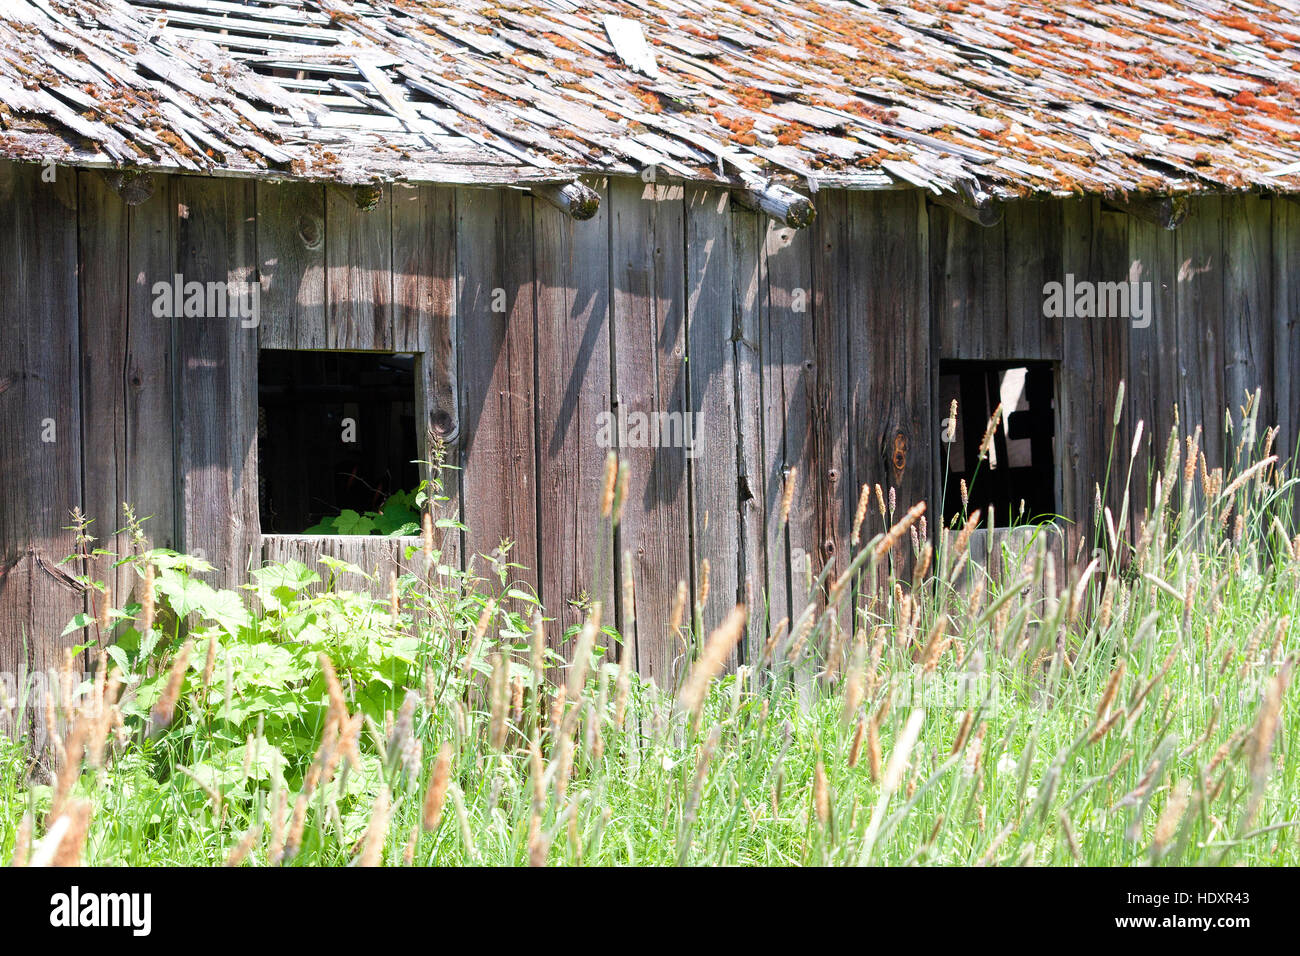 Old wooden barn shows signs of age - Stock Image